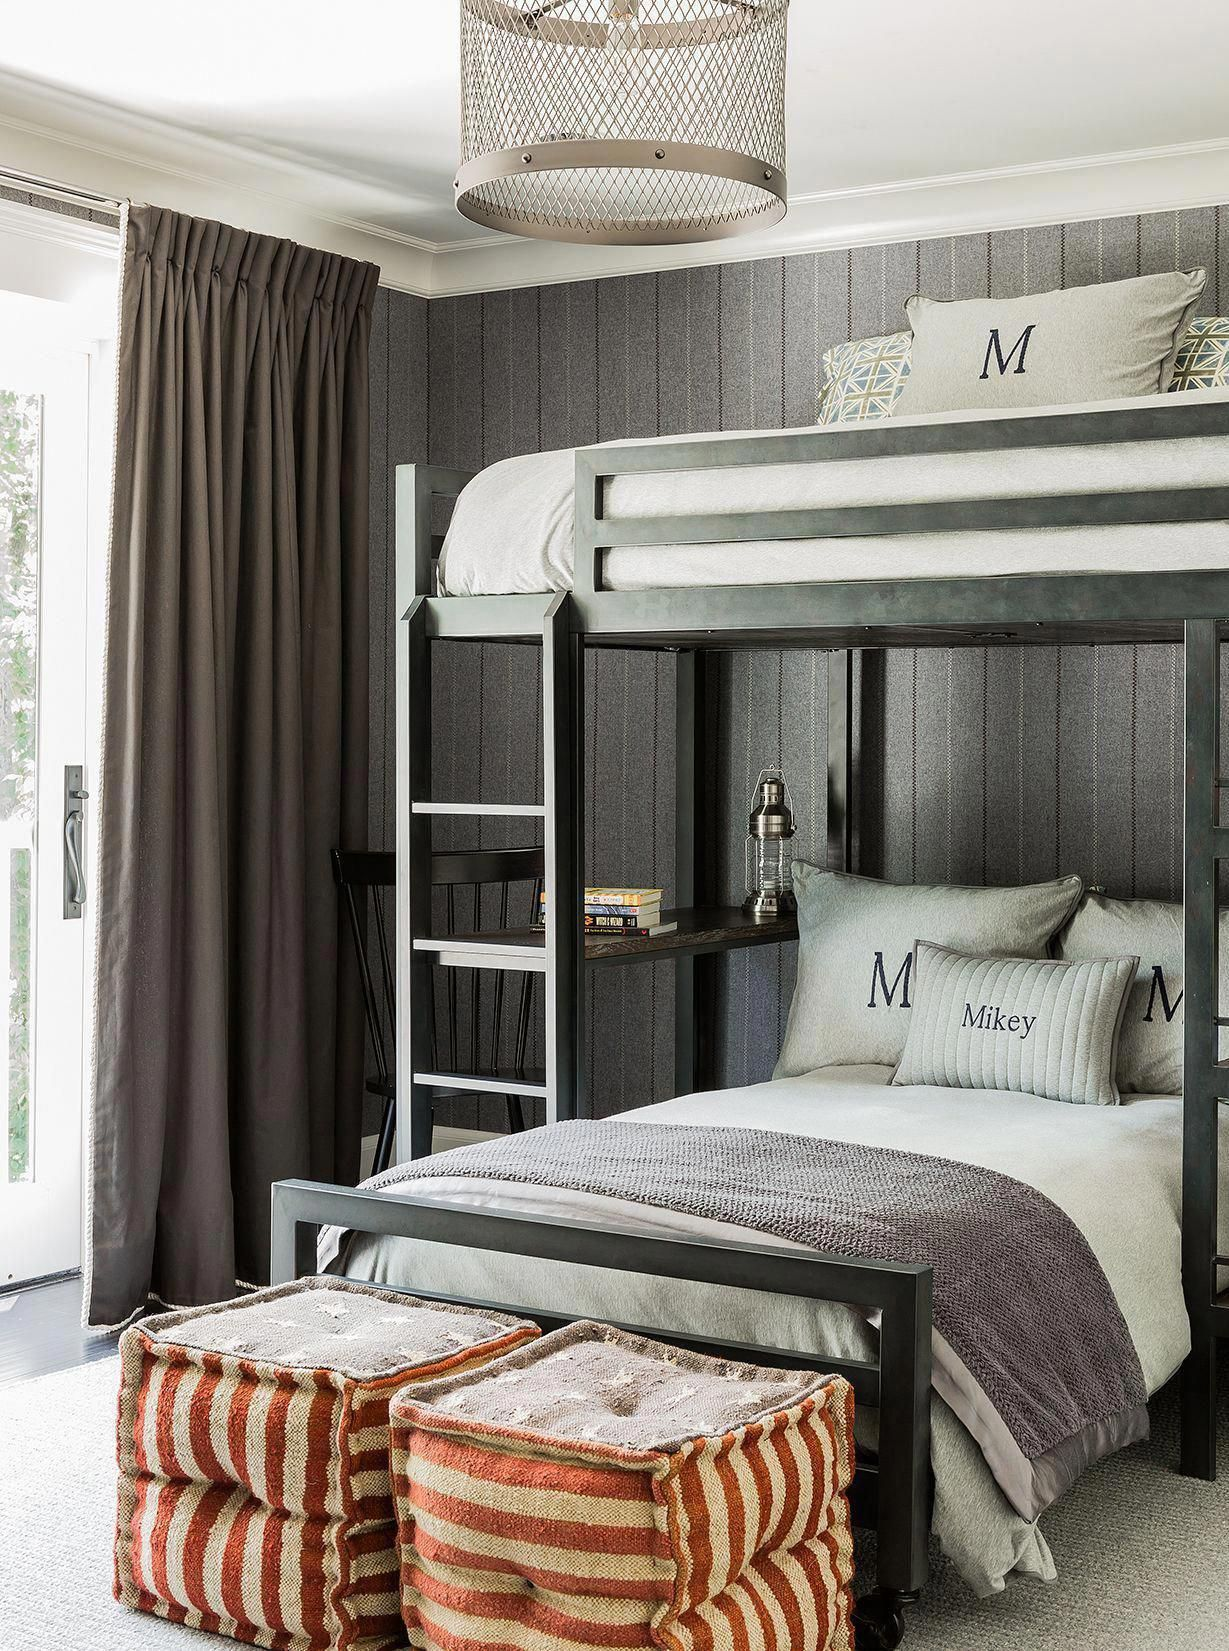 5 wonderful ideas of triple bunk beds for your kids on wonderful ideas of bunk beds for your kids bedroom id=57451